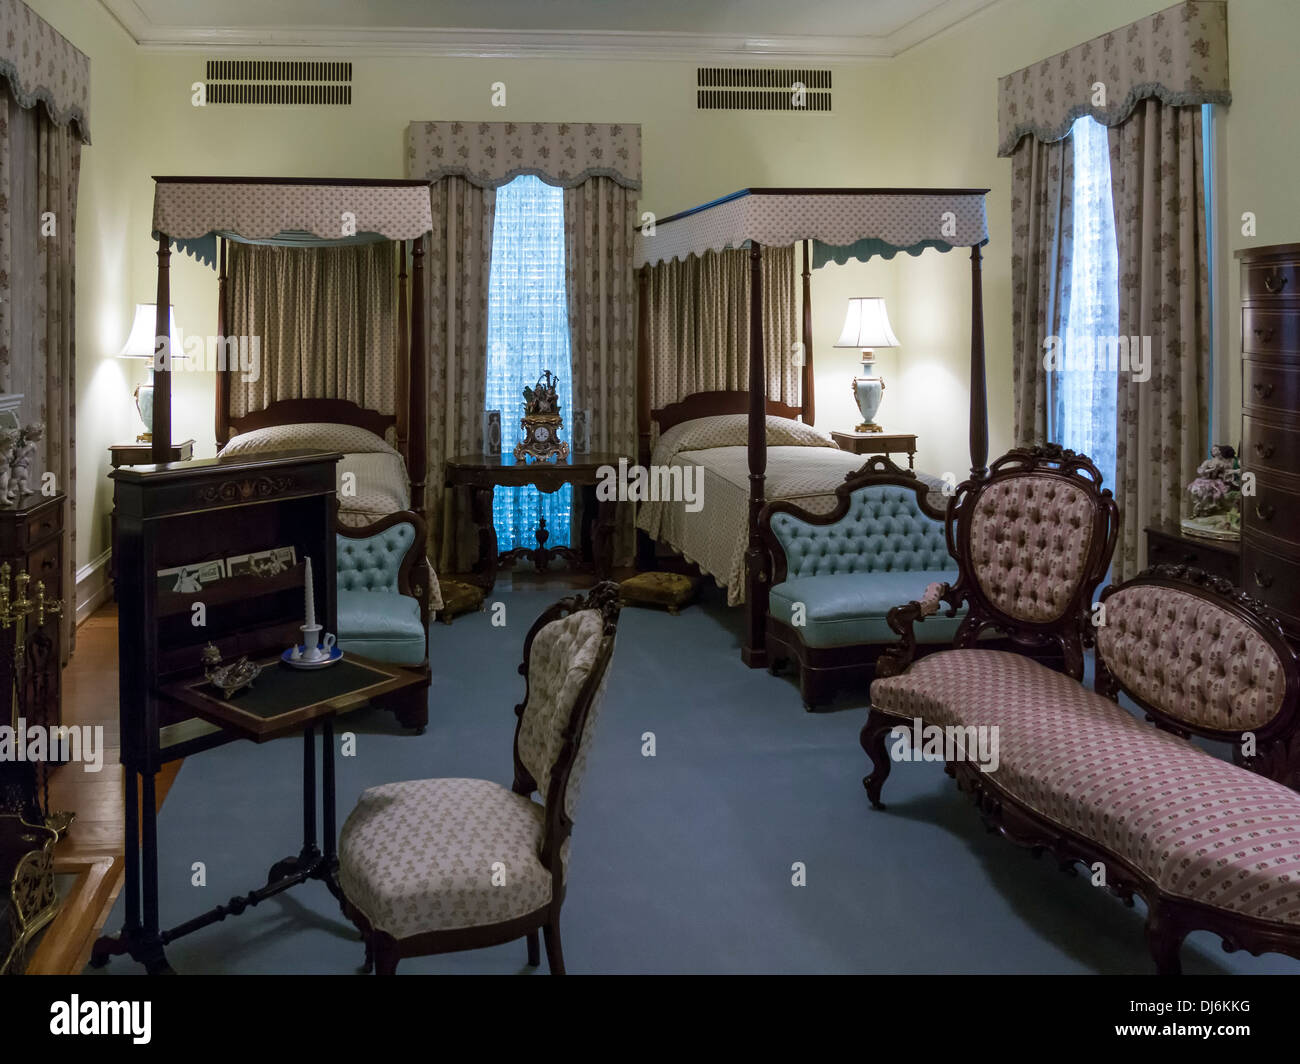 Inside The Bellingrath Home Bellingrath Gardens And Home Theodore Stock Photo Royalty Free